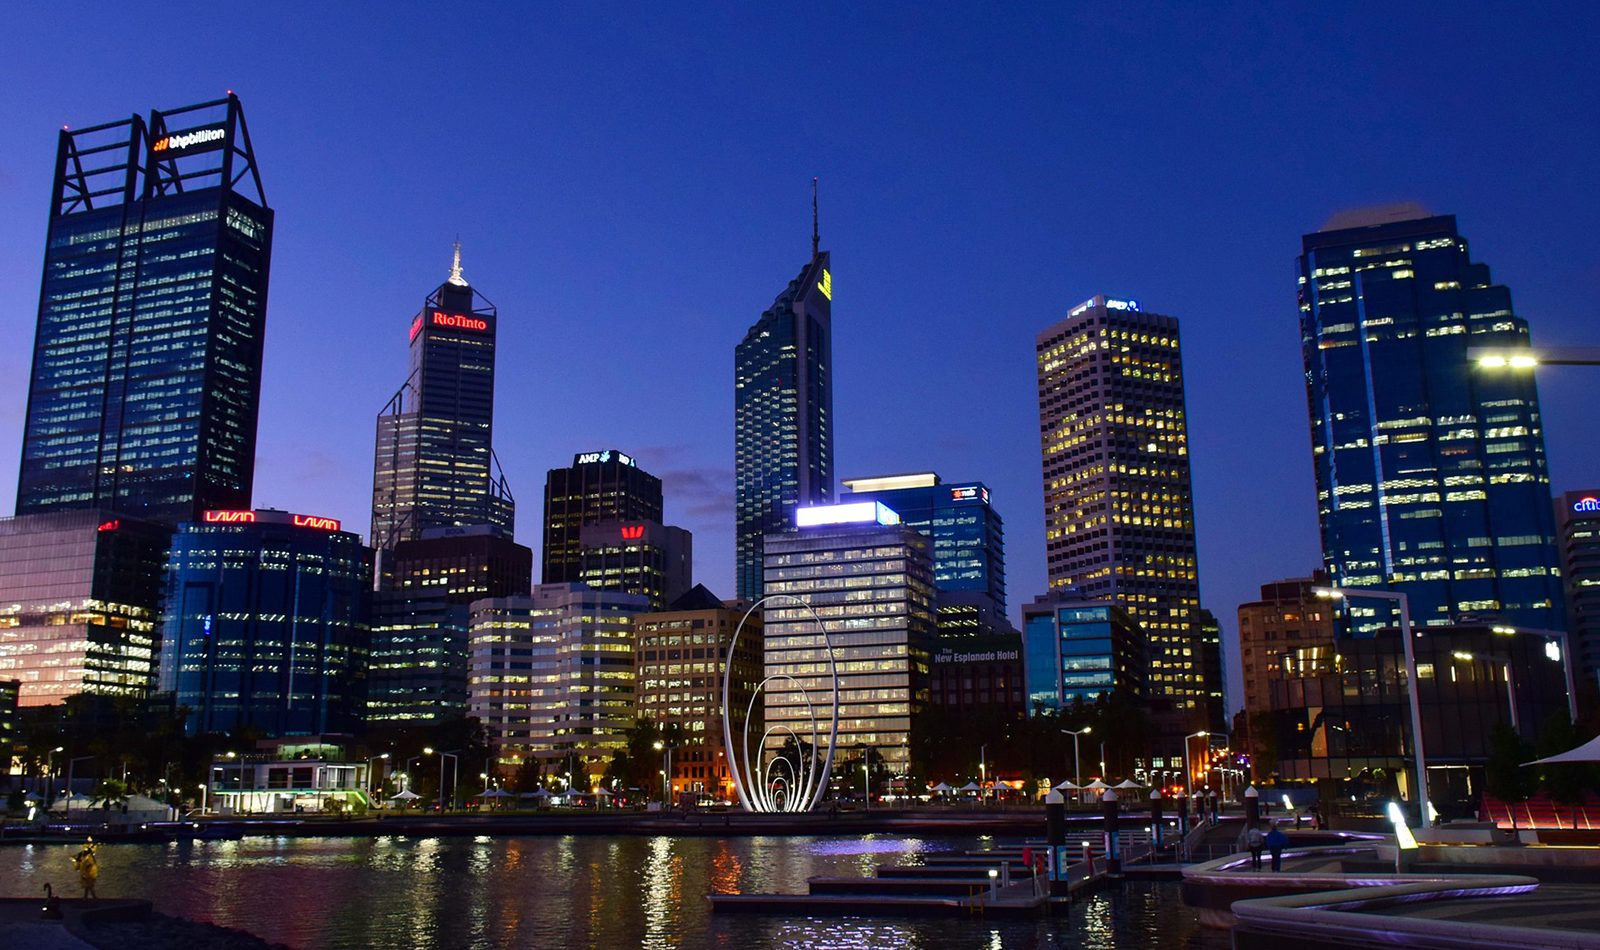 Downtown Perth at night, brightly lit skyscrapers and the docks in the foreground